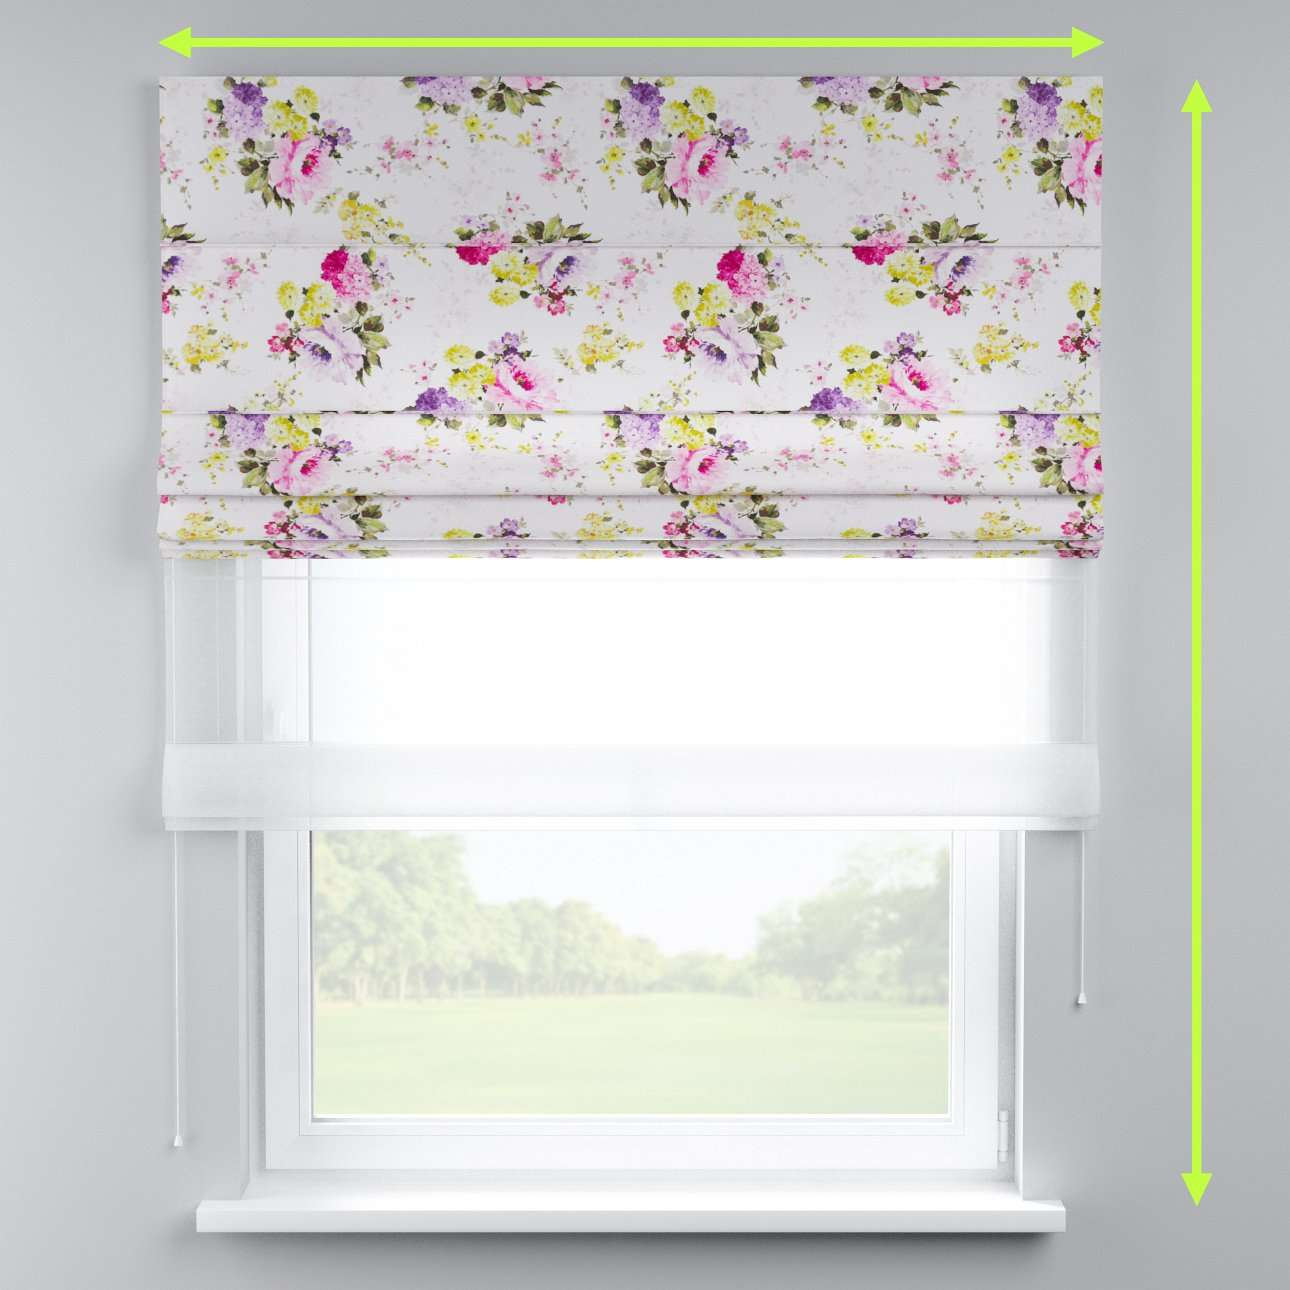 Voile and fabric roman blind (DUO II) in collection Monet, fabric: 140-00